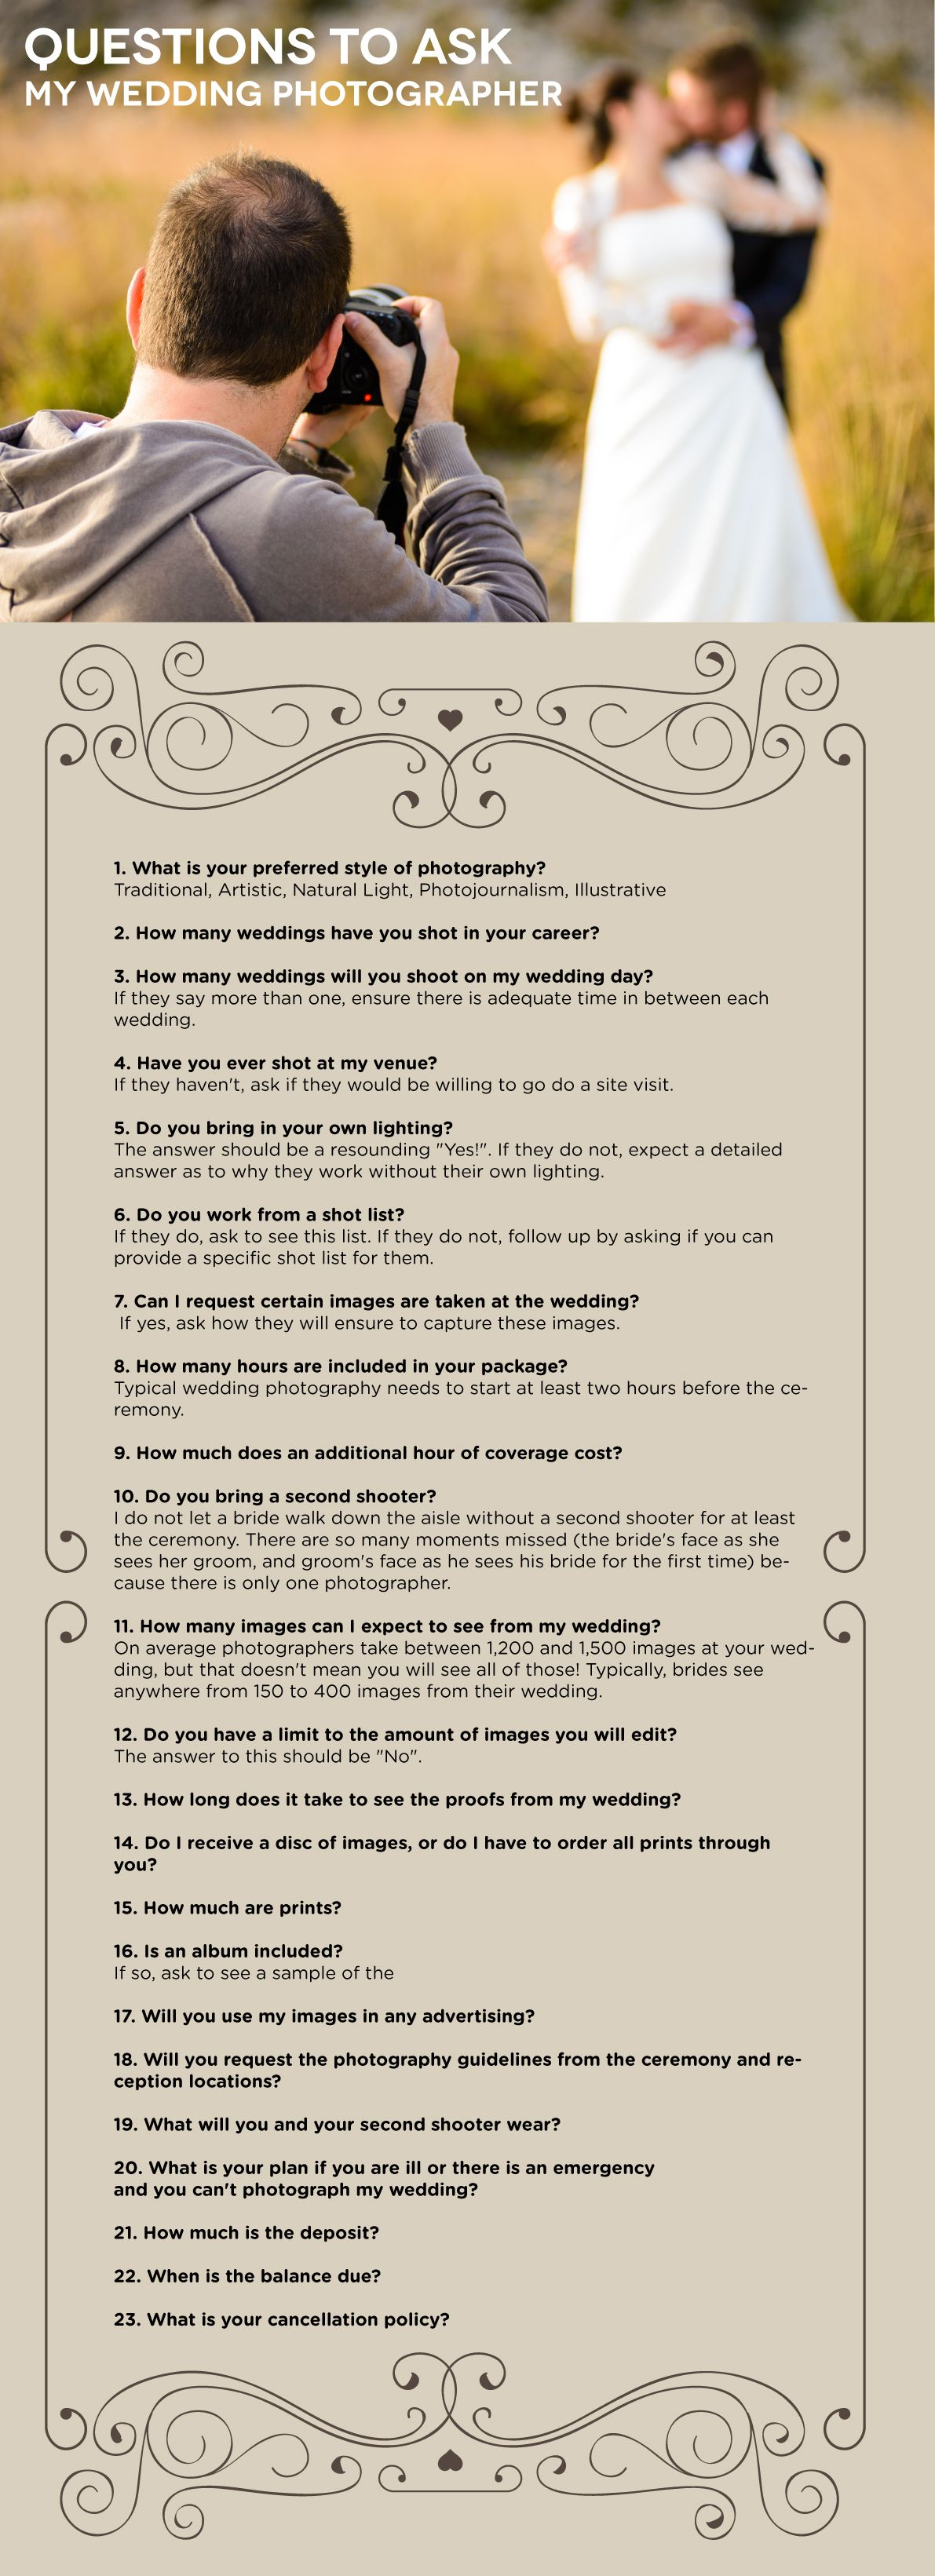 Bride And Groom Questionnaire Wedding Photography Business Wedding Photographer Questions Wedding Photography List